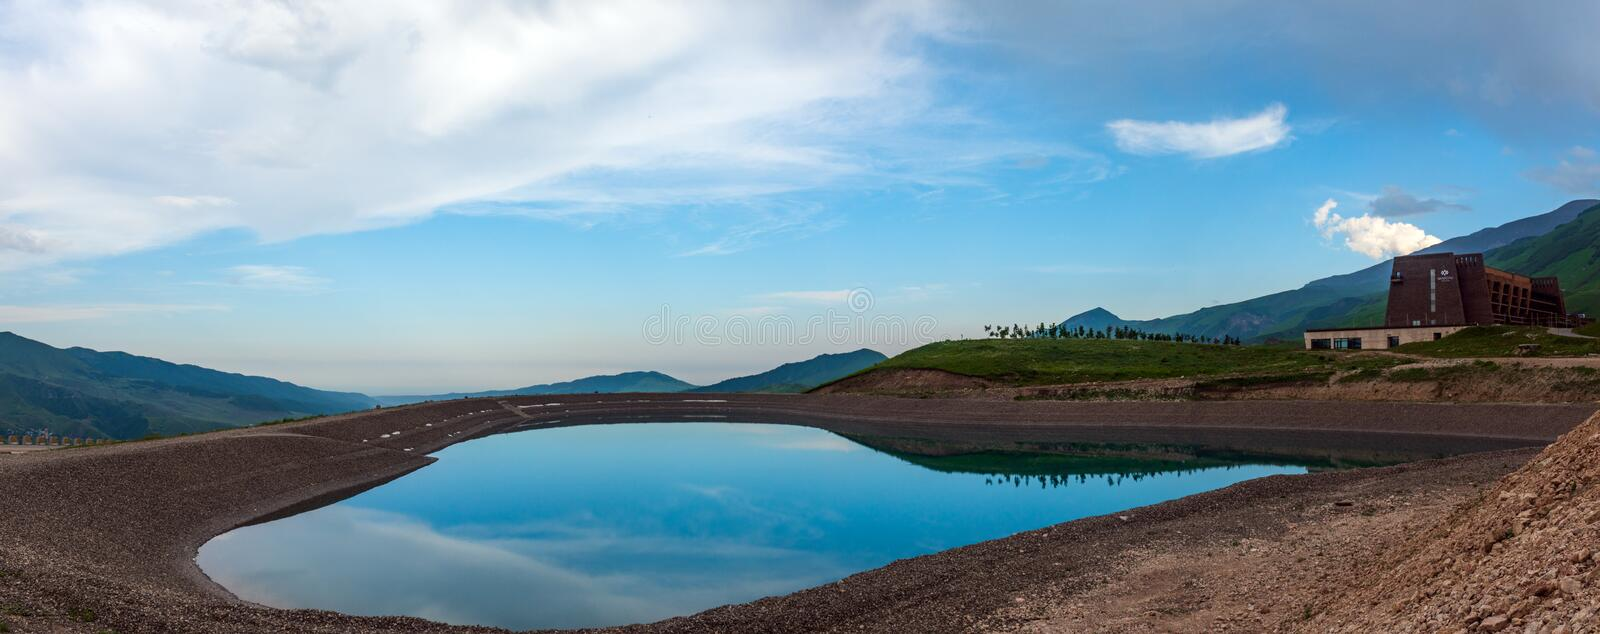 Lake near Shahdag hotel in the mountains, summer vacations and entertainment stock photo